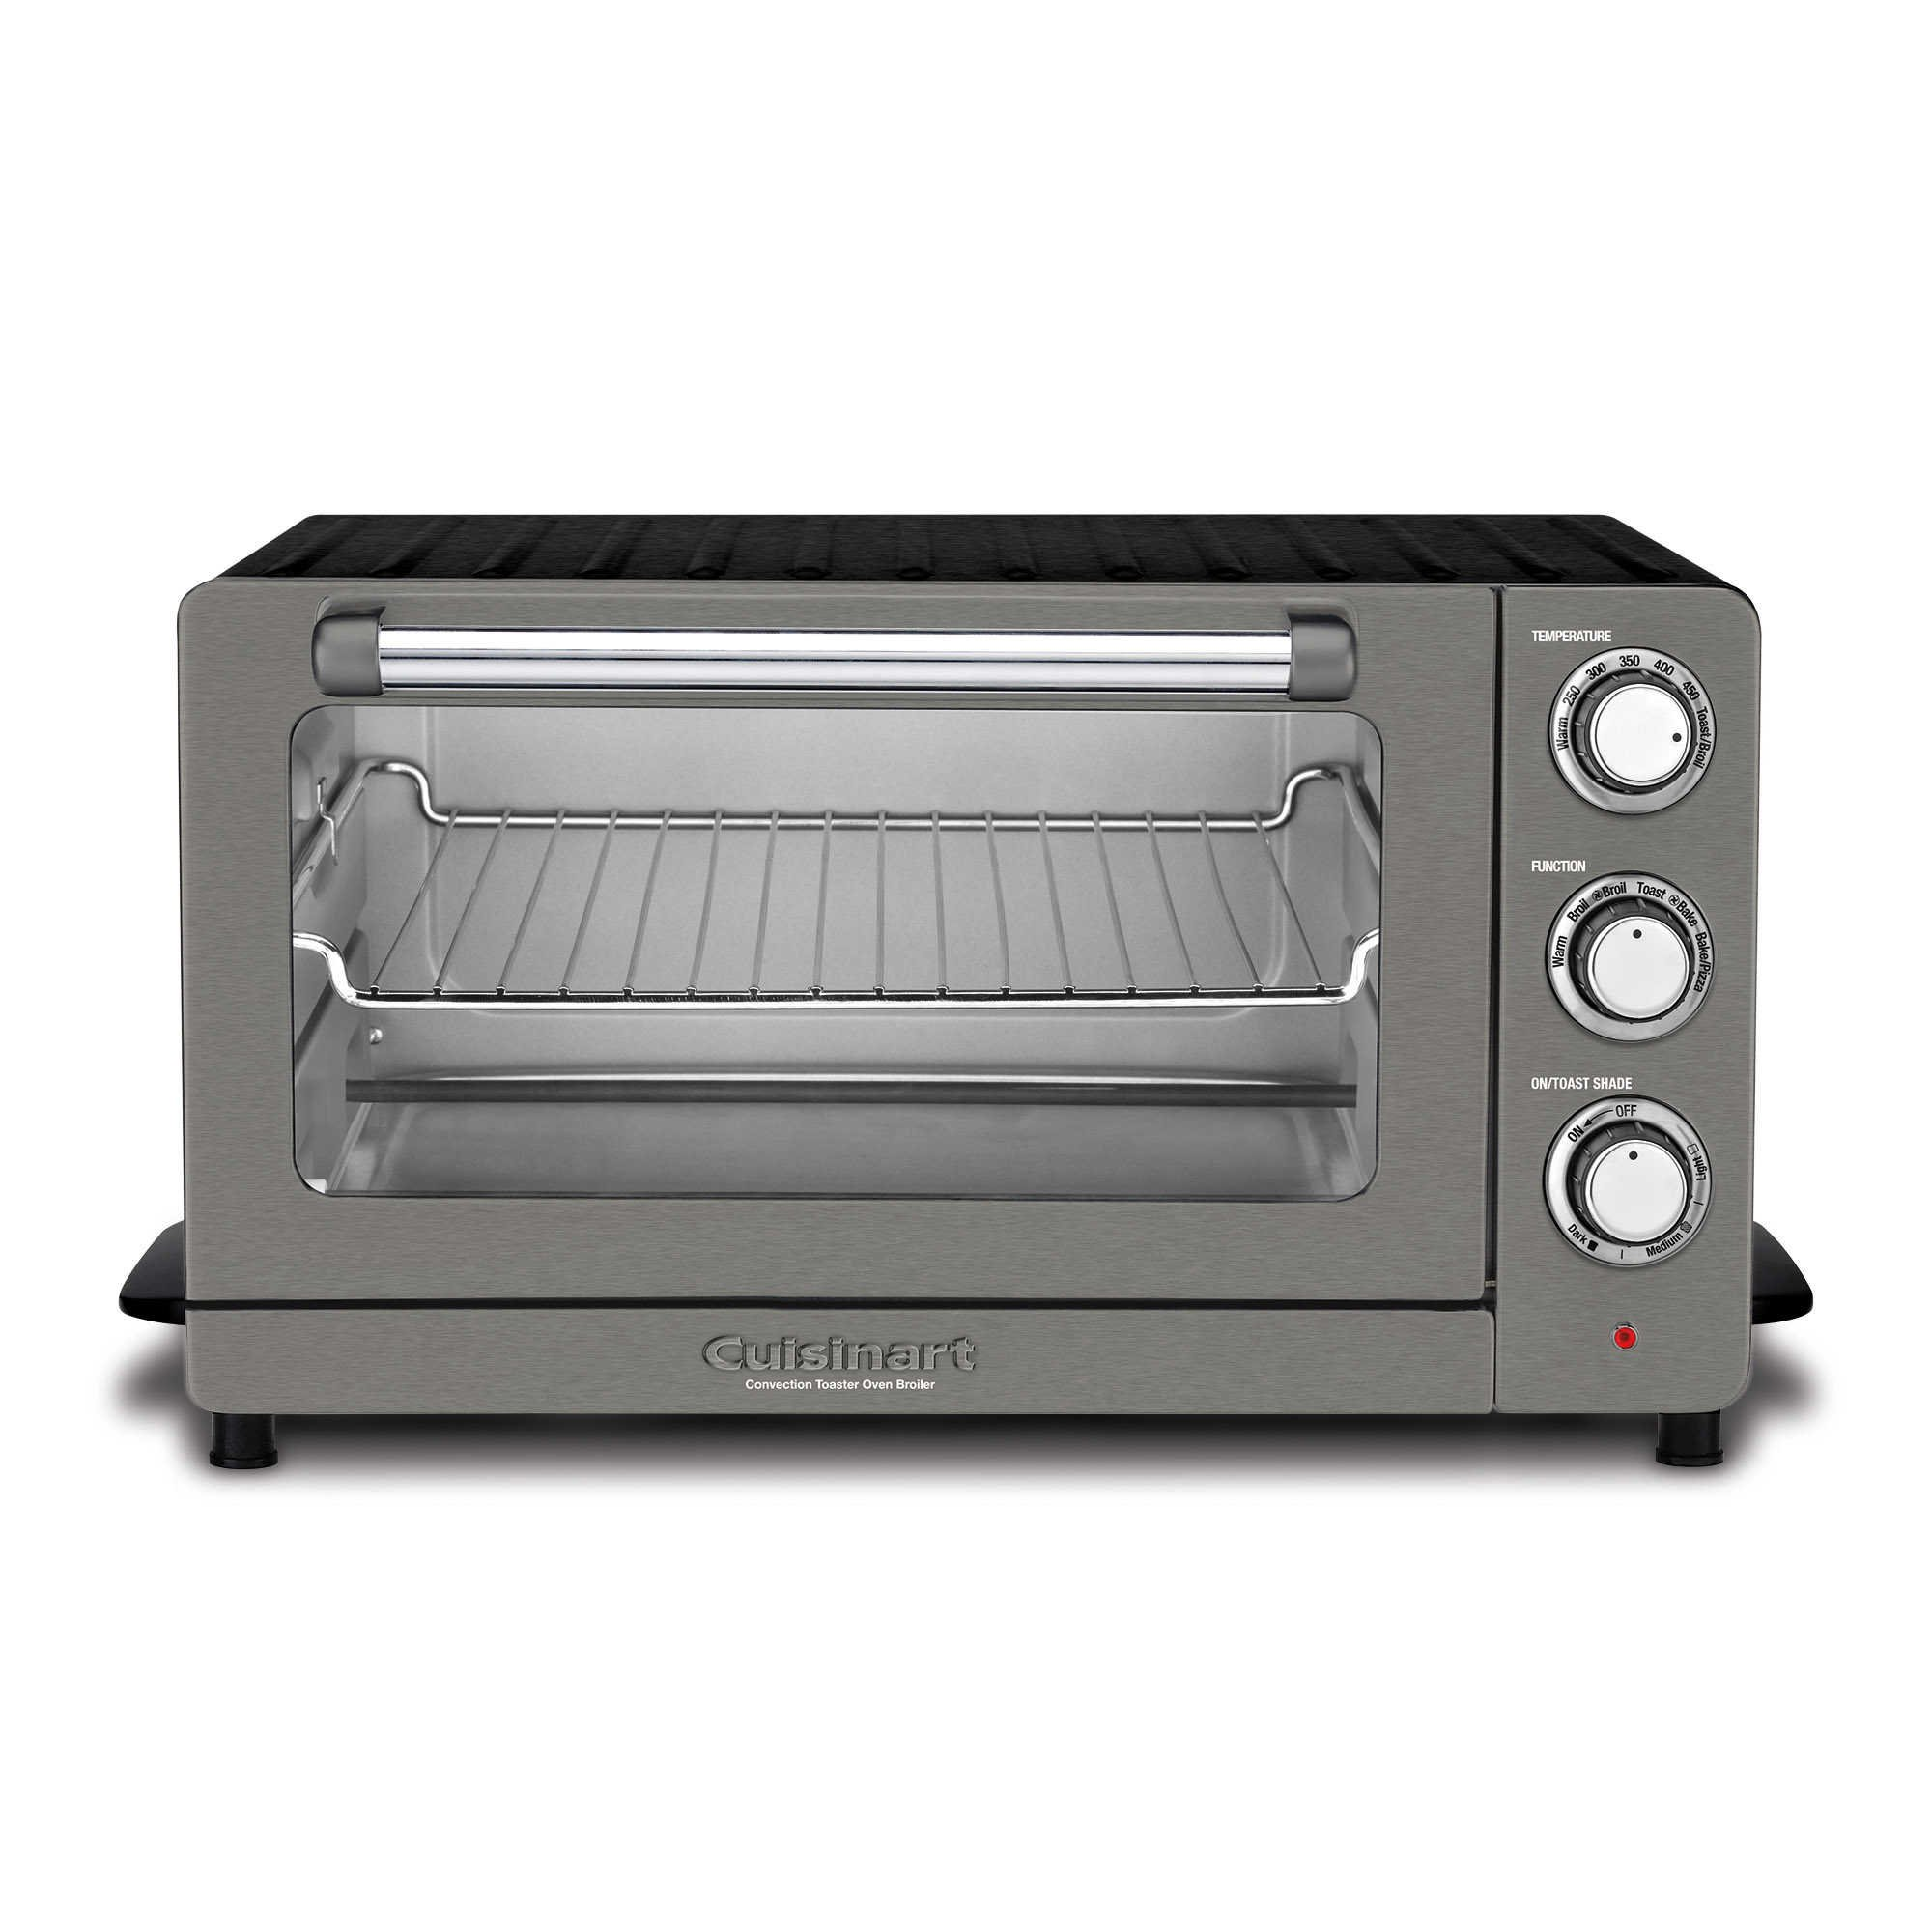 Cuisinart 6-Slice Convection Toaster Oven/Broiler in Black Stainless